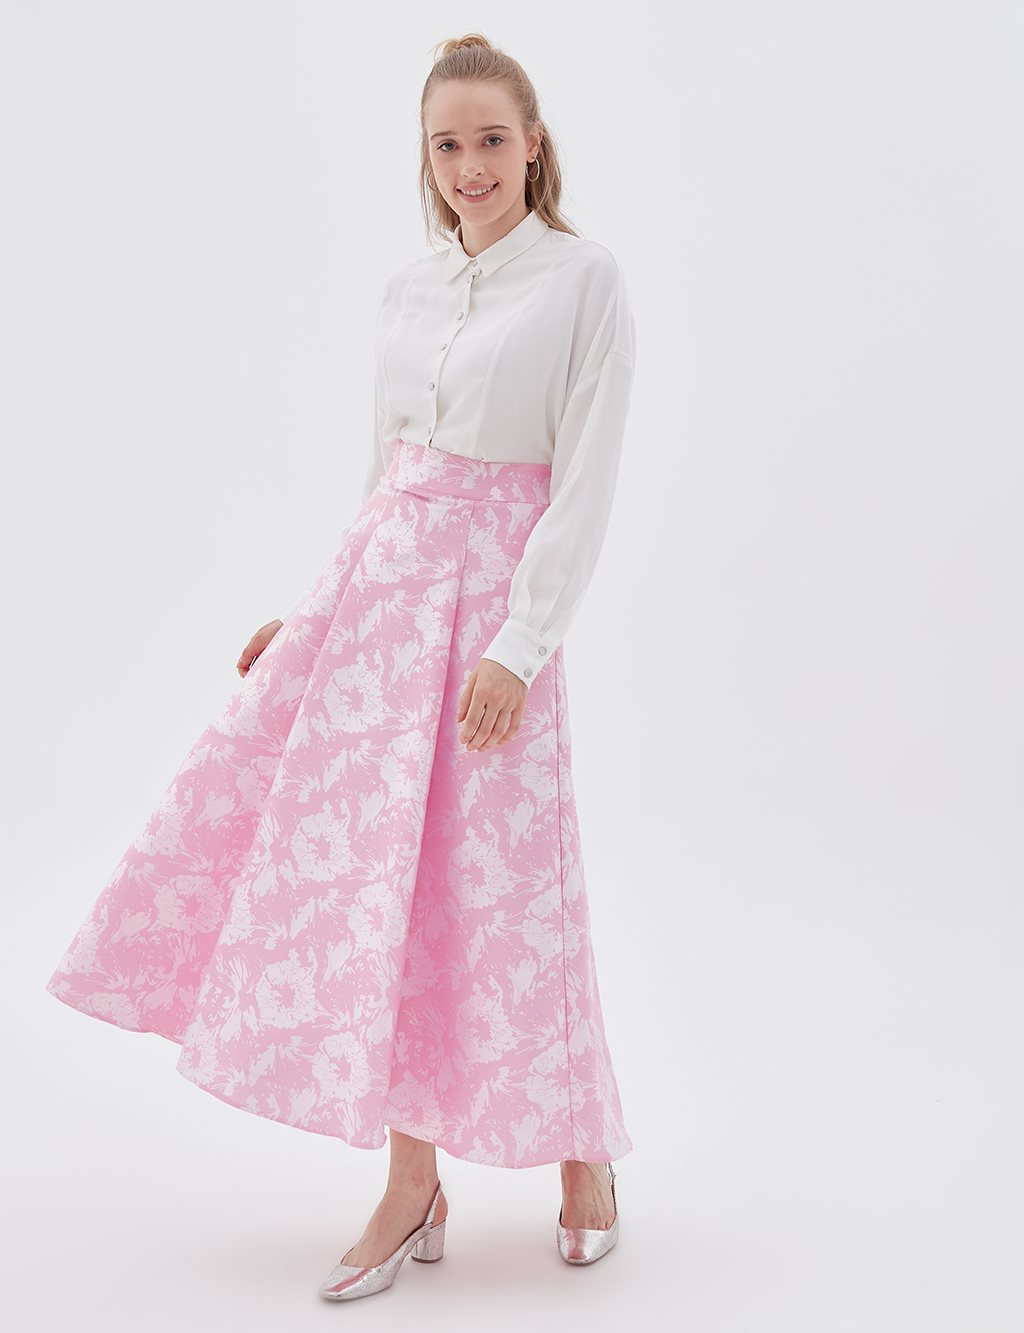 Floral Patterned Skirt B20 12054 Pink